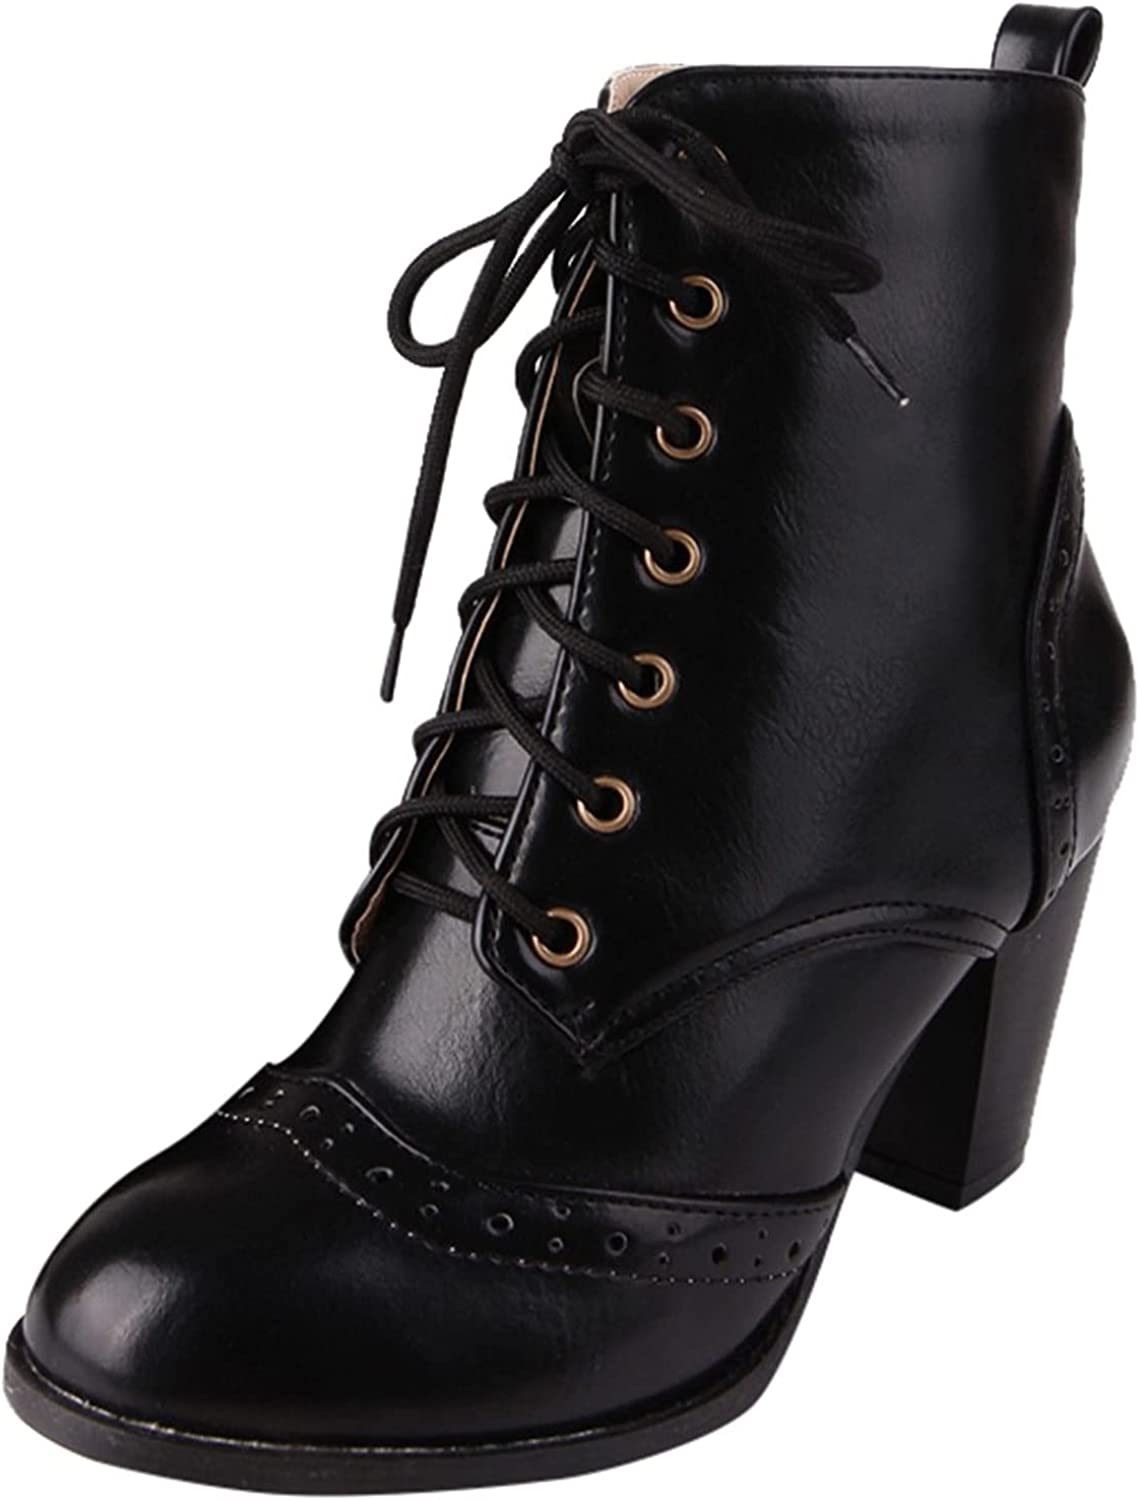 Fashion Lace-Up Solid Womens Work Boots In a popularity And Waterproof Year-end gift Non-Slip